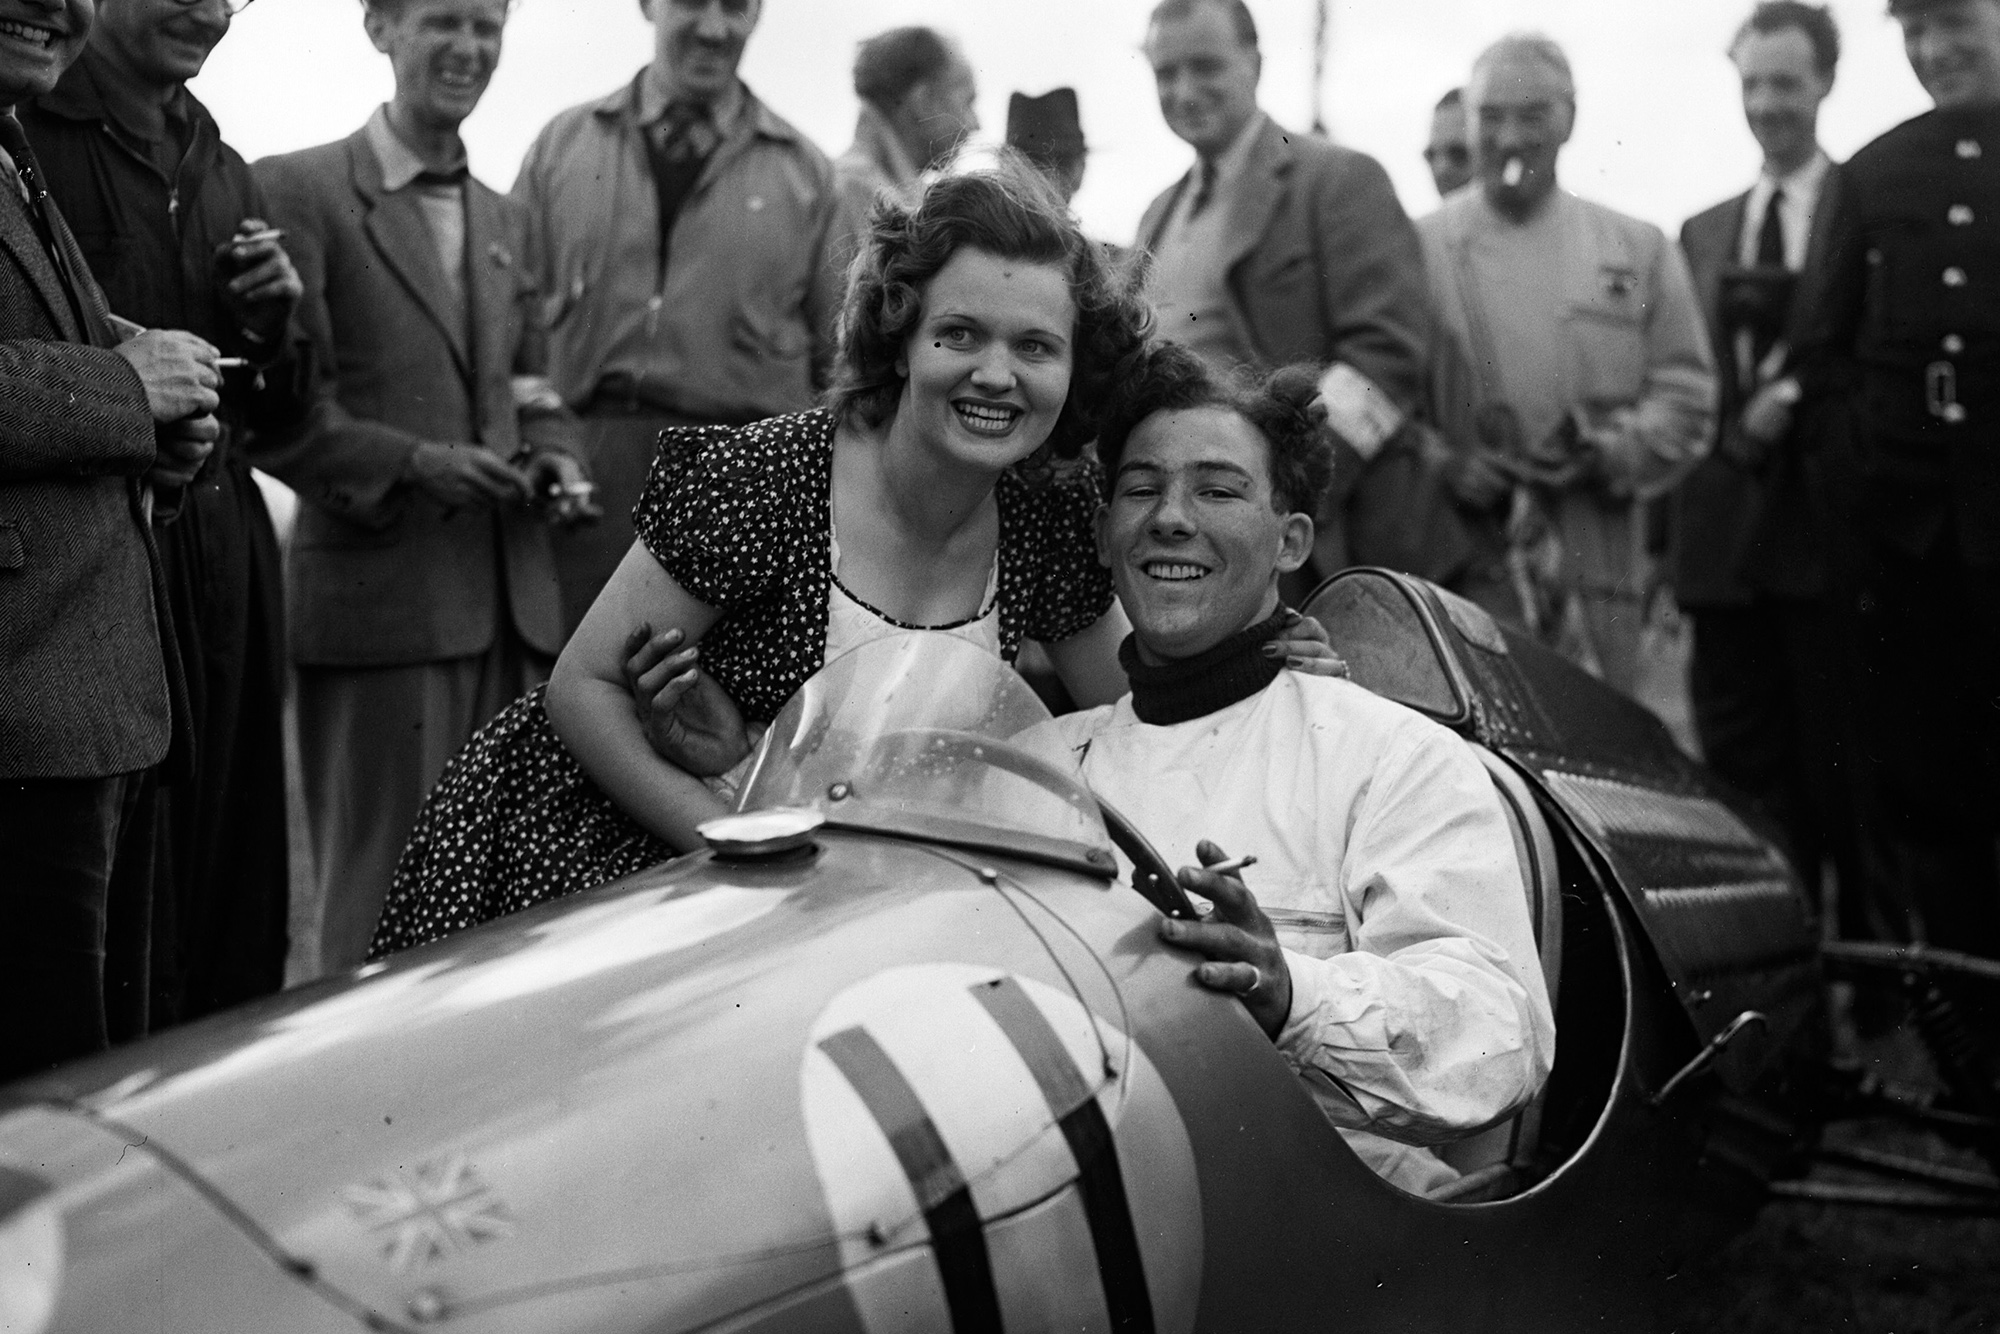 Stirling Moss after a victory in August 1950